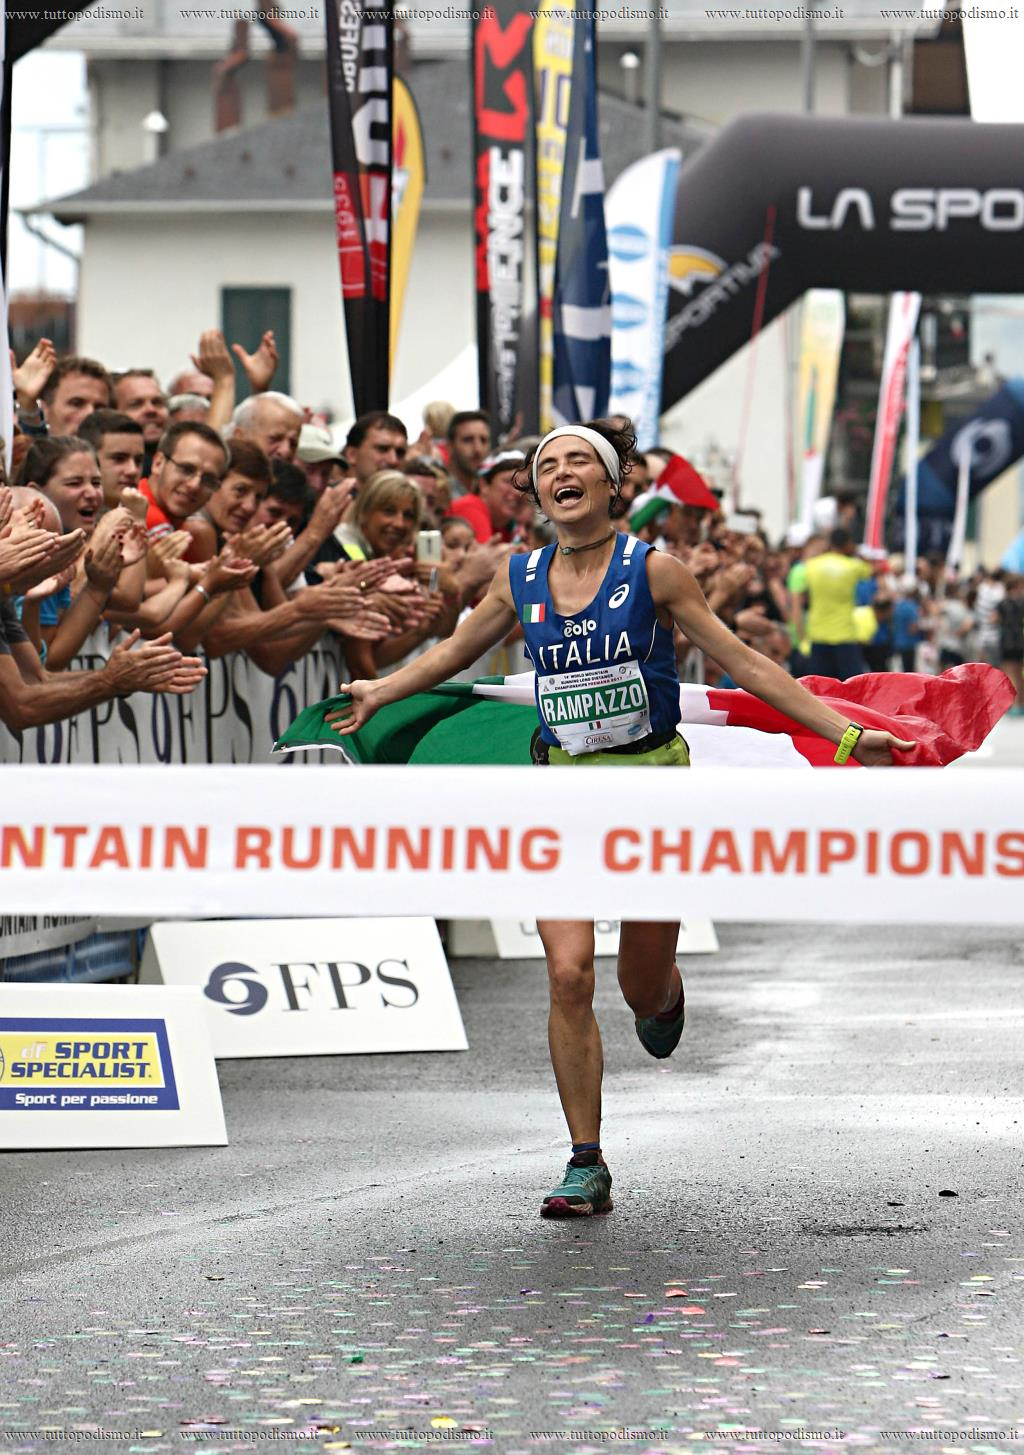 14o_World_Mountain_Running_Championship_long_distance - rampazzo_arrivo.jpg